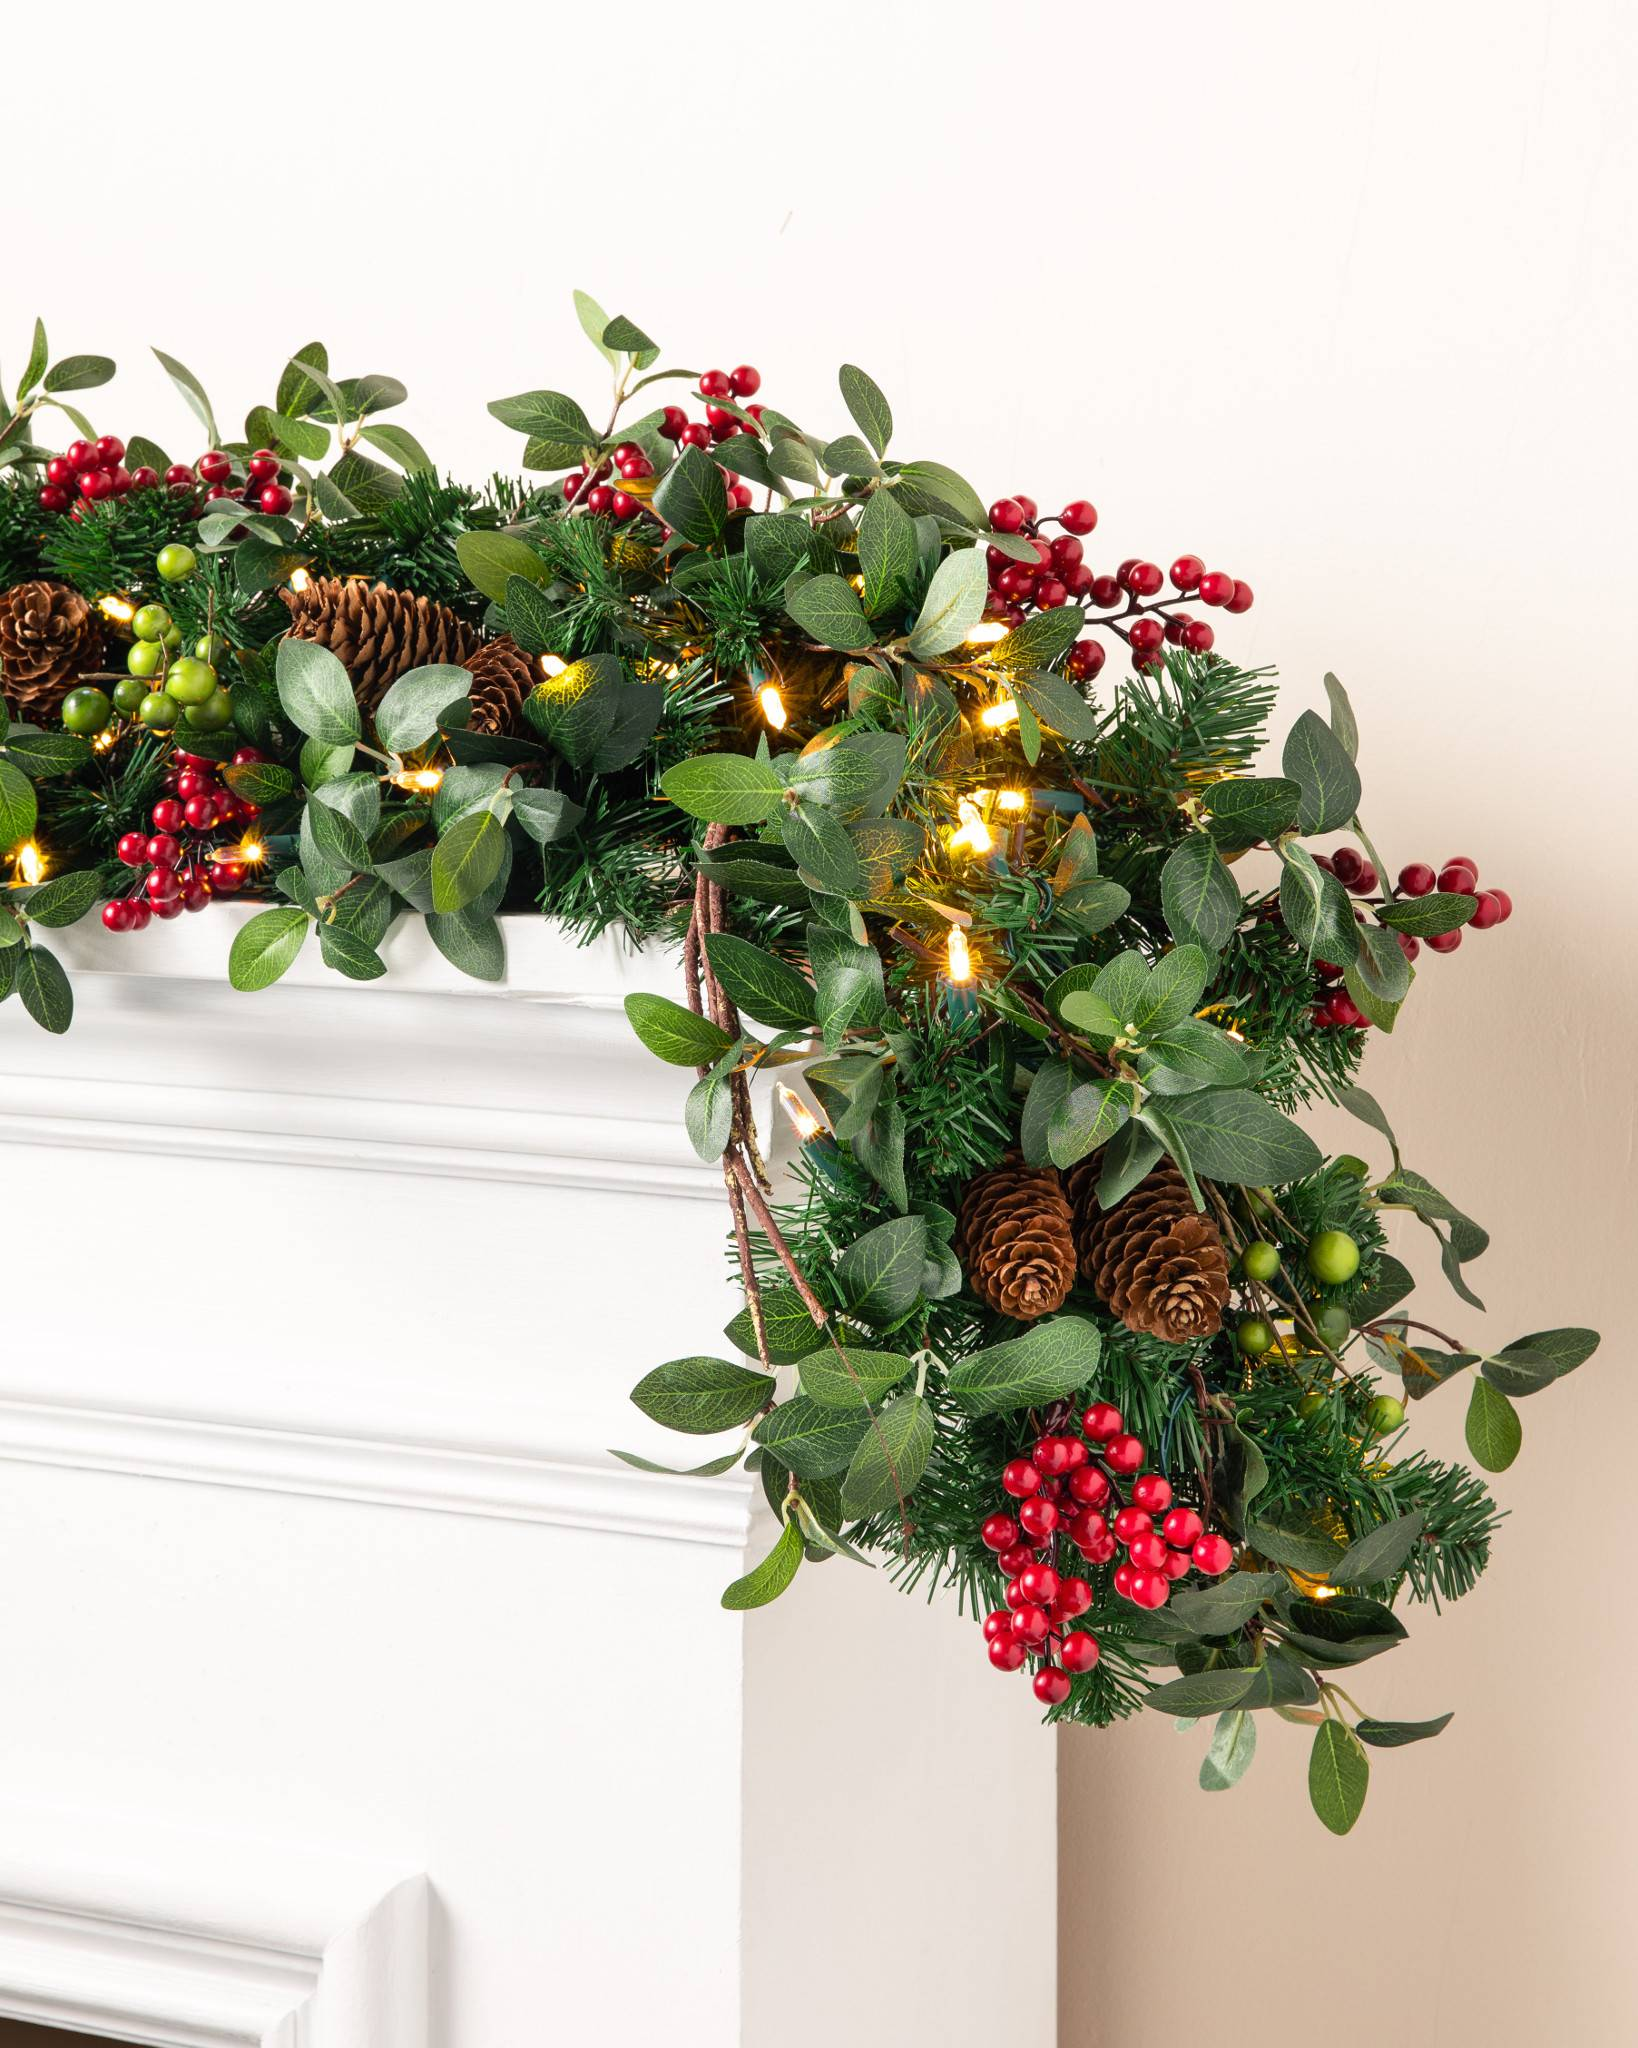 Bay Laurel with Mixed Berries Wreath and Garland | Balsam Hill